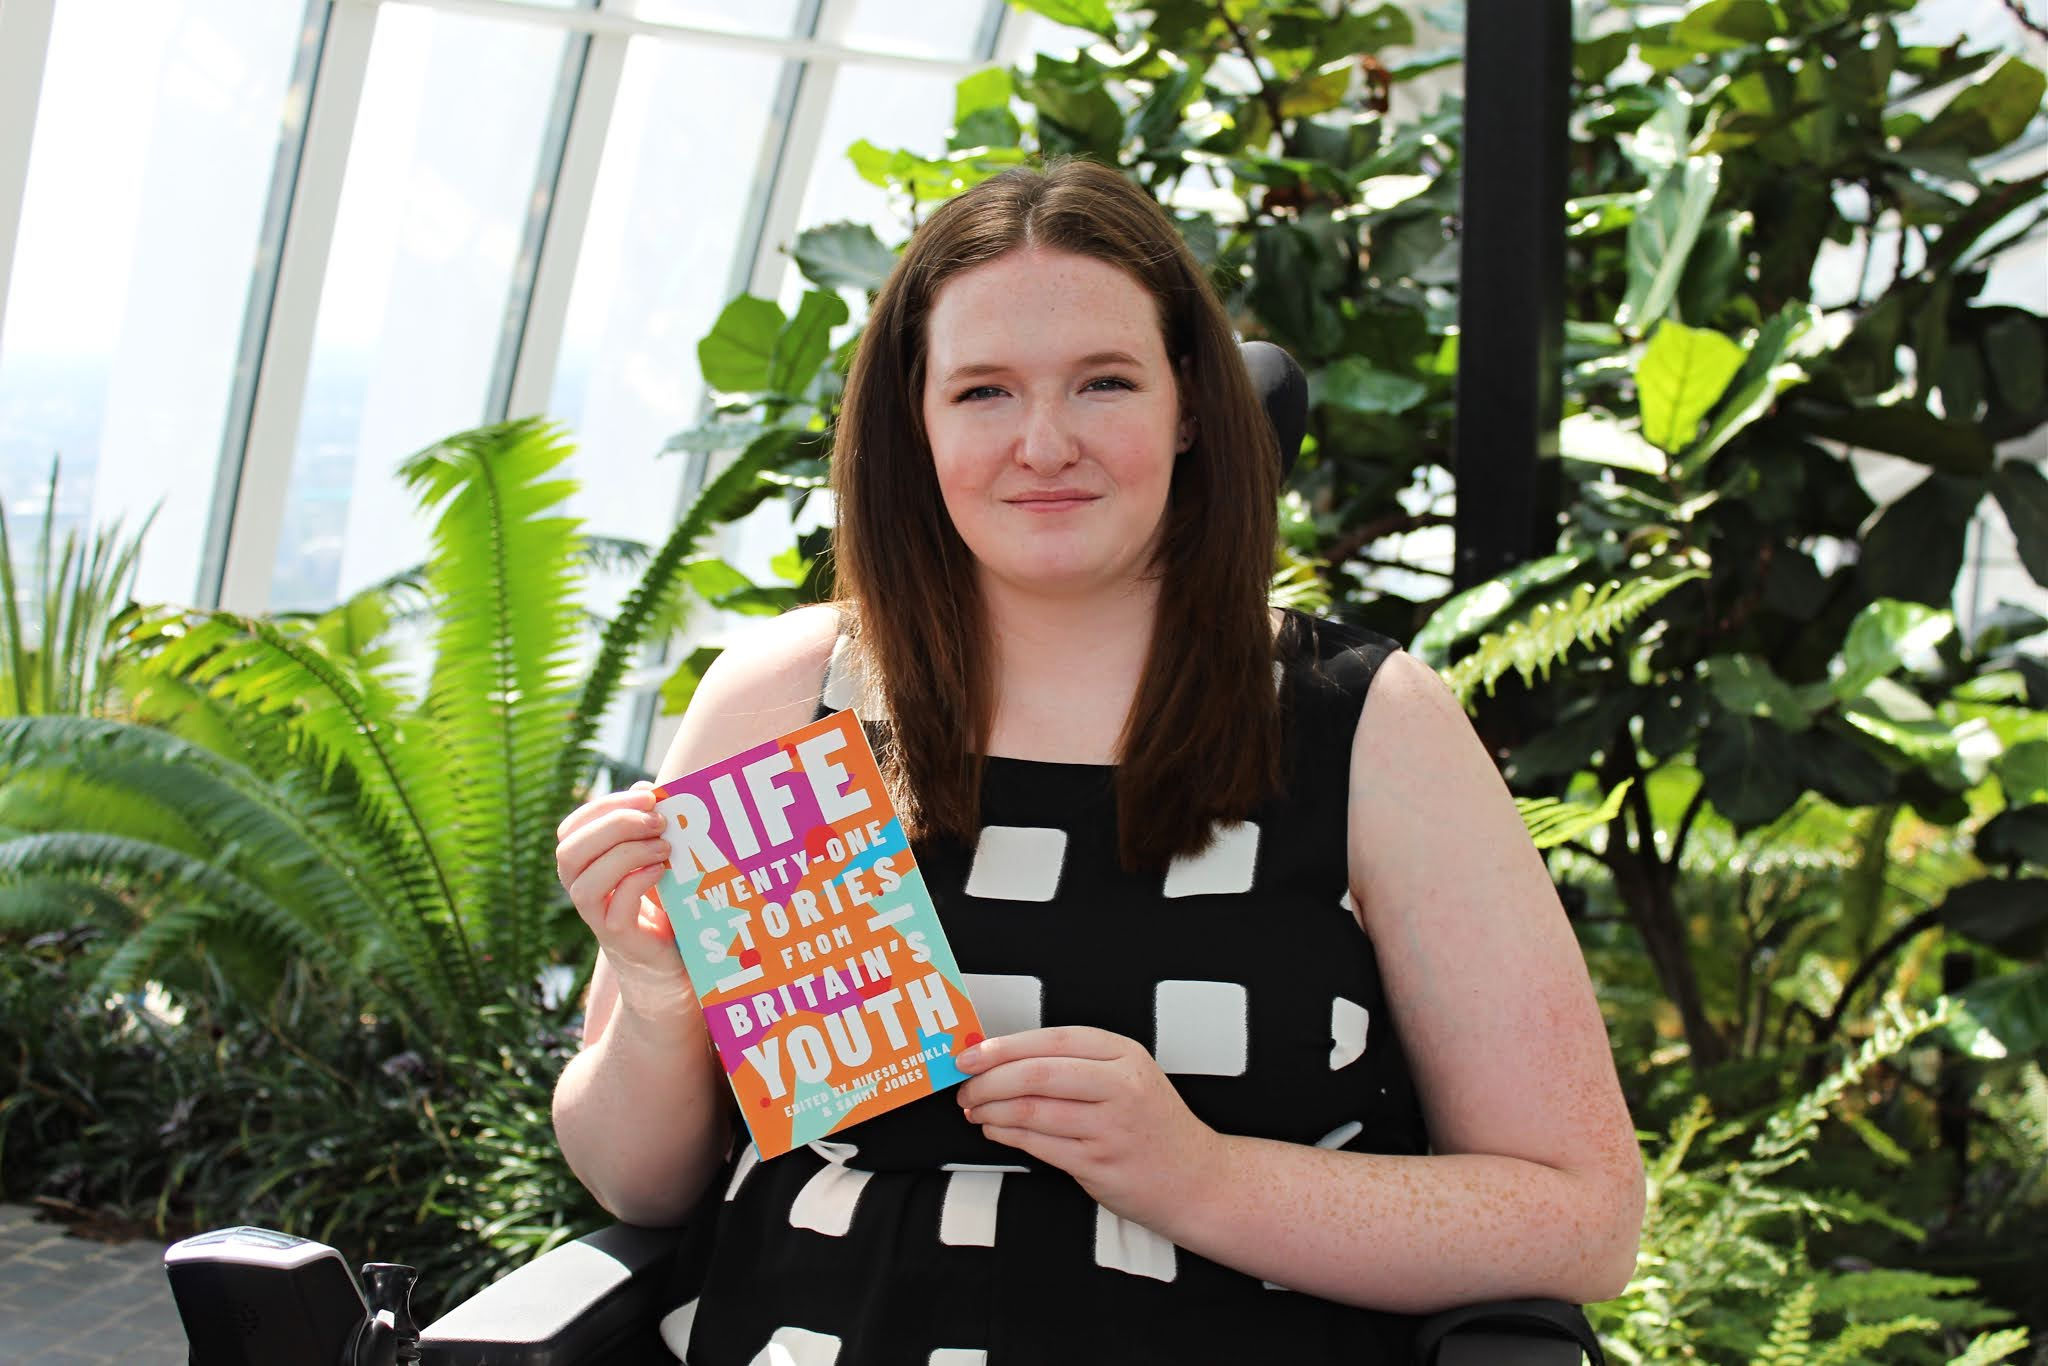 Shona, a young woman with long auburn hair, is sat in her powerchair wearing a black and white checkered jumpsuit. She is smiling and holding a brightly coloured book. Lots of green plants can be seen behind her. This photo was taken in the Sky Garden in London.